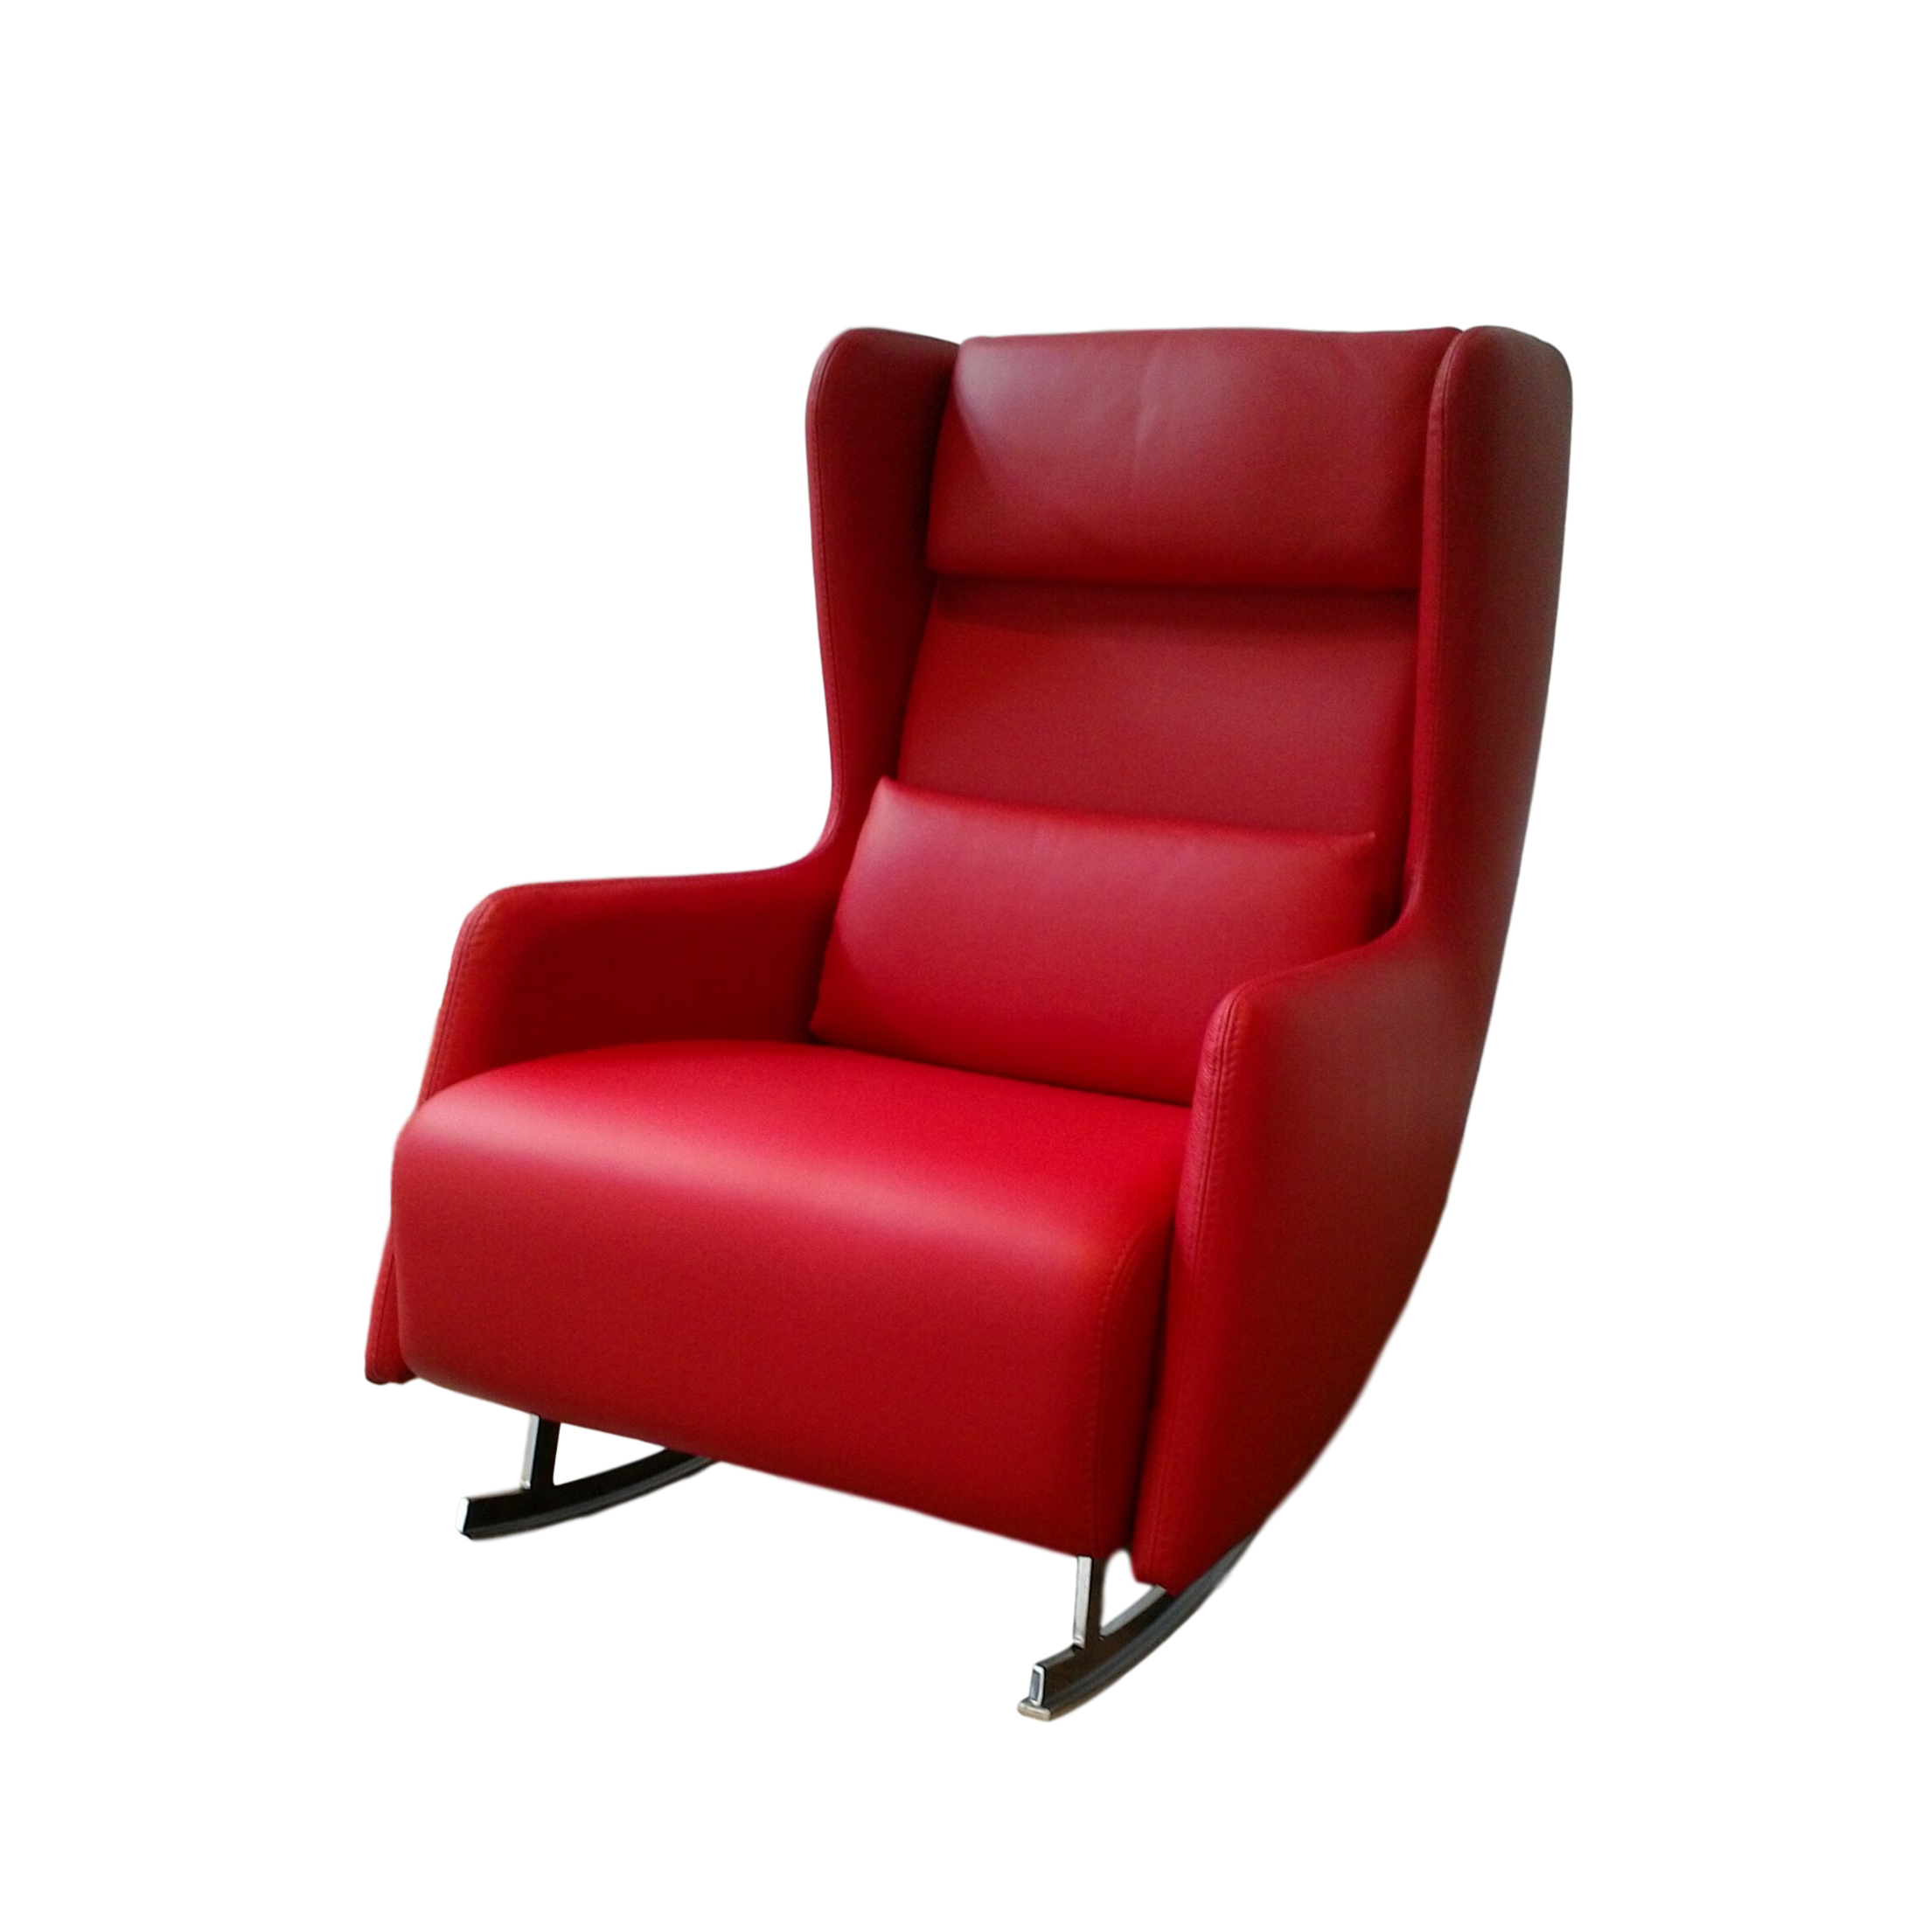 luxury furniture stores calgary sofas armchairs florence rocking chair prianera luxuries of europe